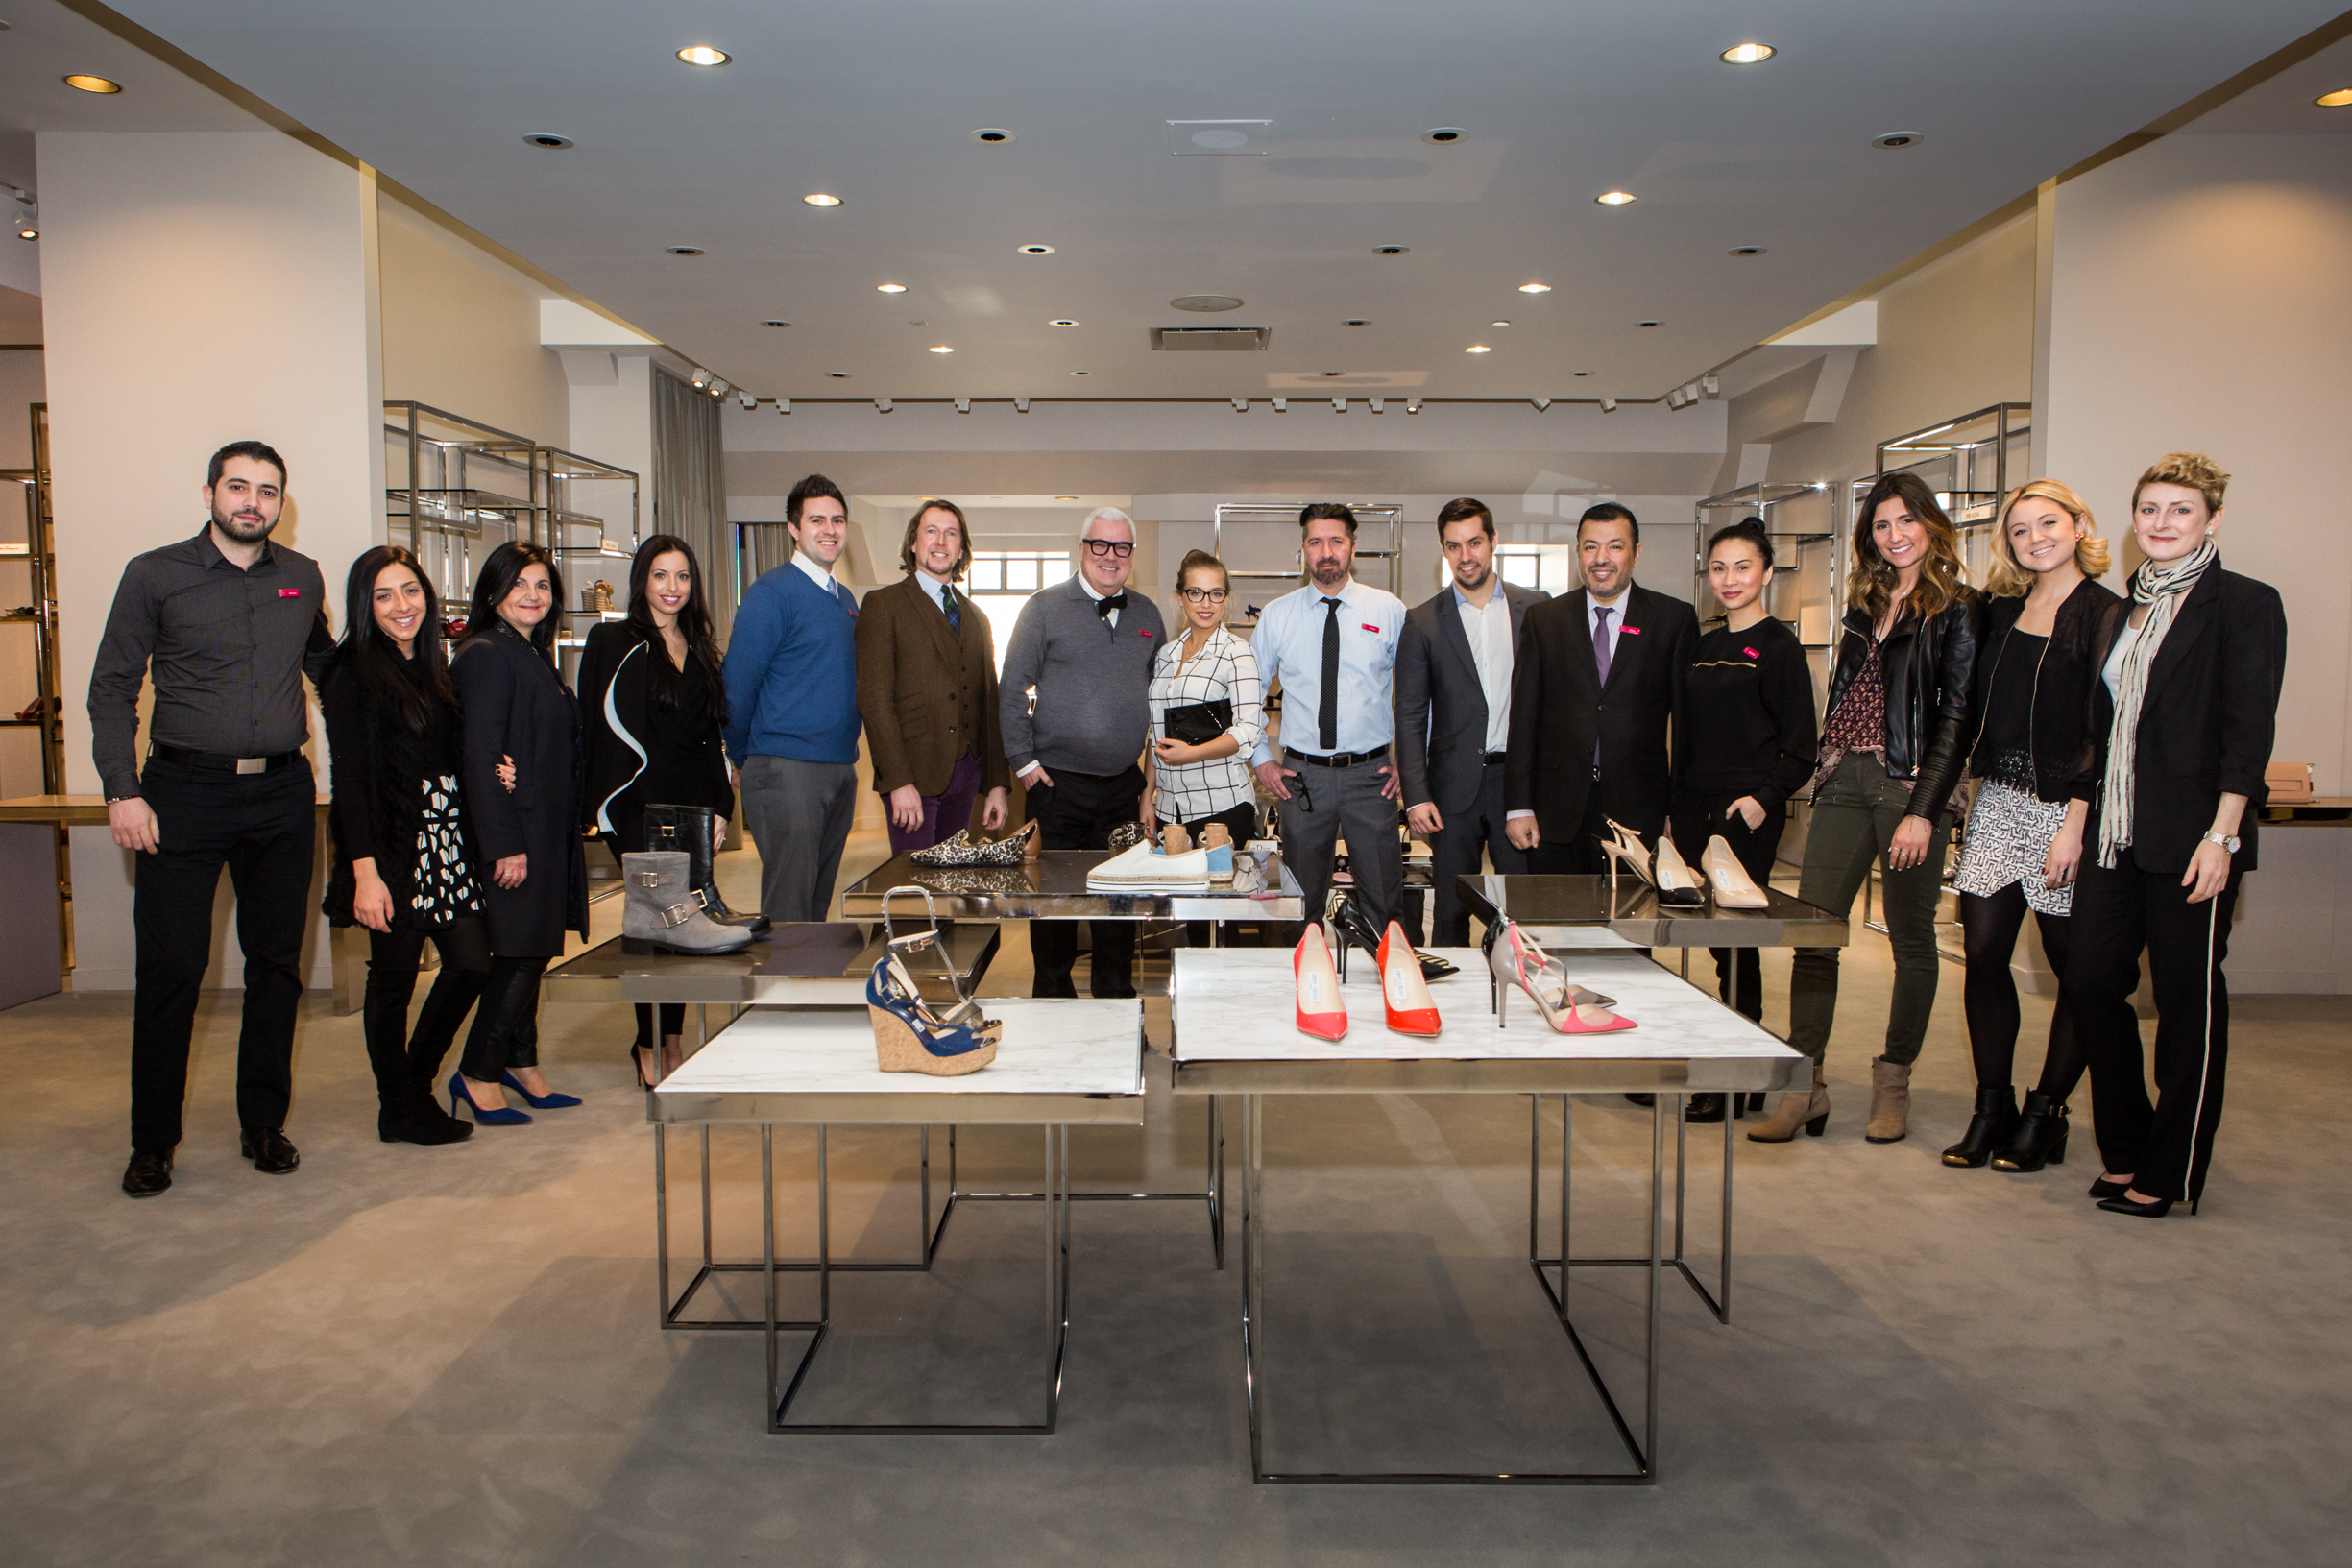 Holts Ogilvy crew montreal marketing fashion post mademoiselle jules mlle